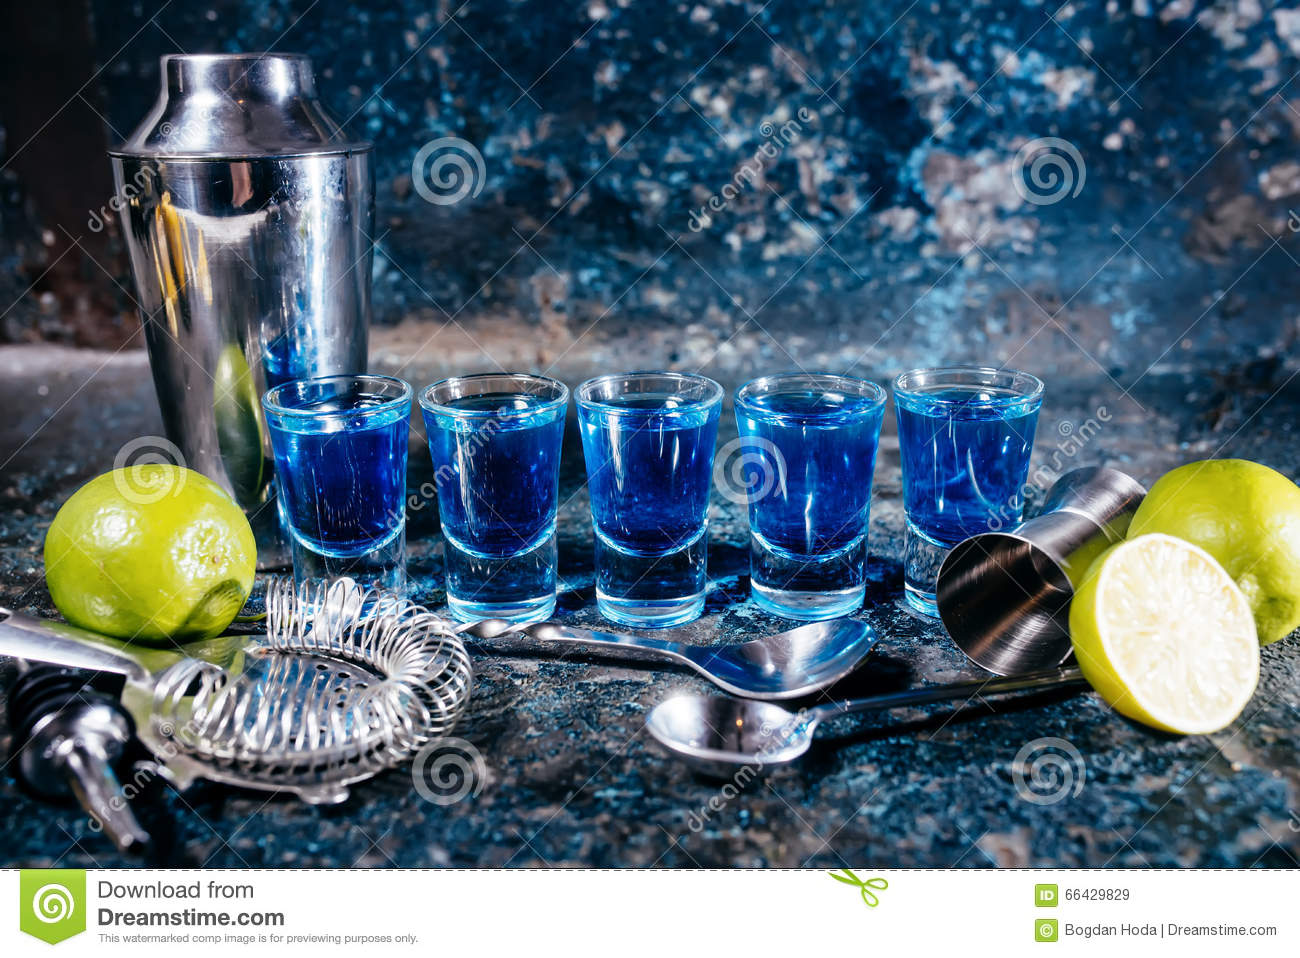 Blue curacao, alcoholic strong drinks. Cocktails and garnish at bar, pub or restaurant